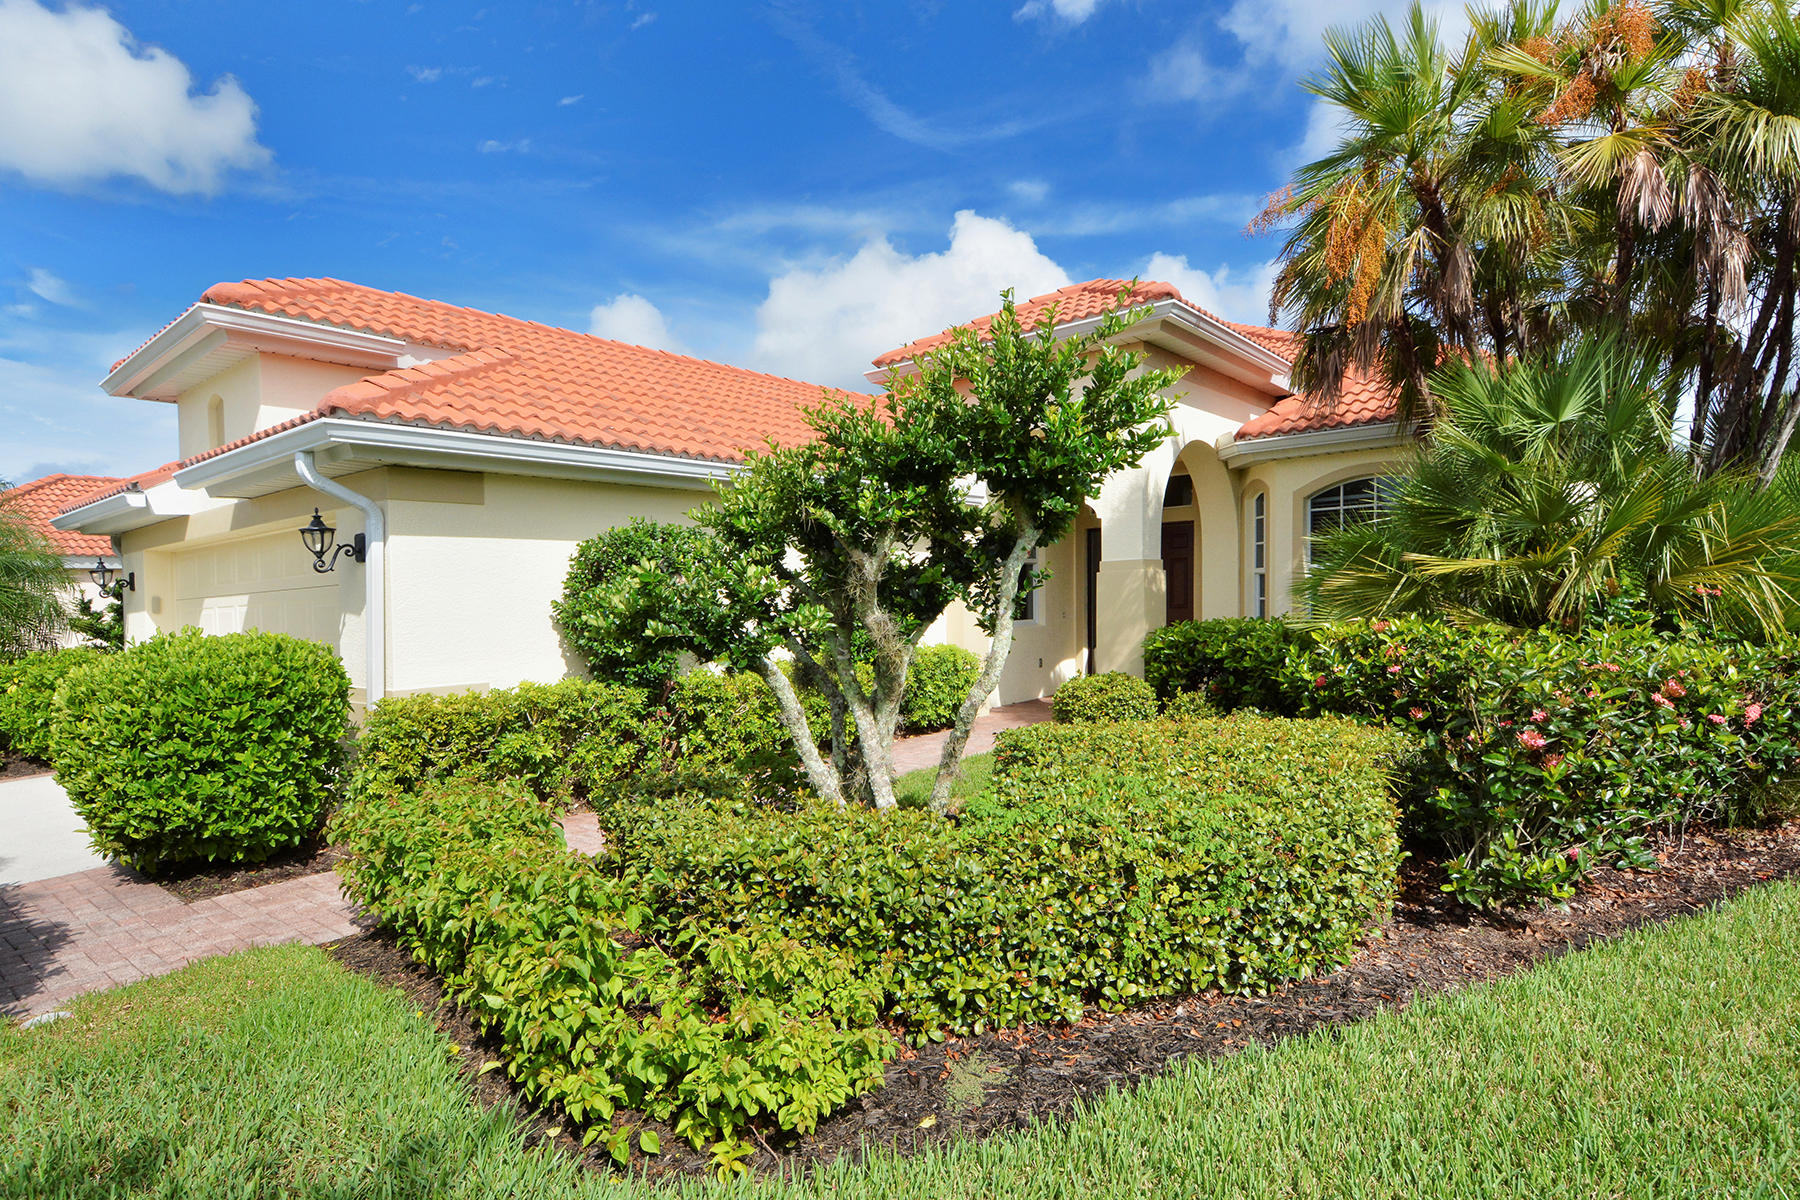 Villa per Vendita alle ore VENETIAN GOLF & RIVER CLUB 110 Bolanza Ct North Venice, Florida, 34275 Stati Uniti